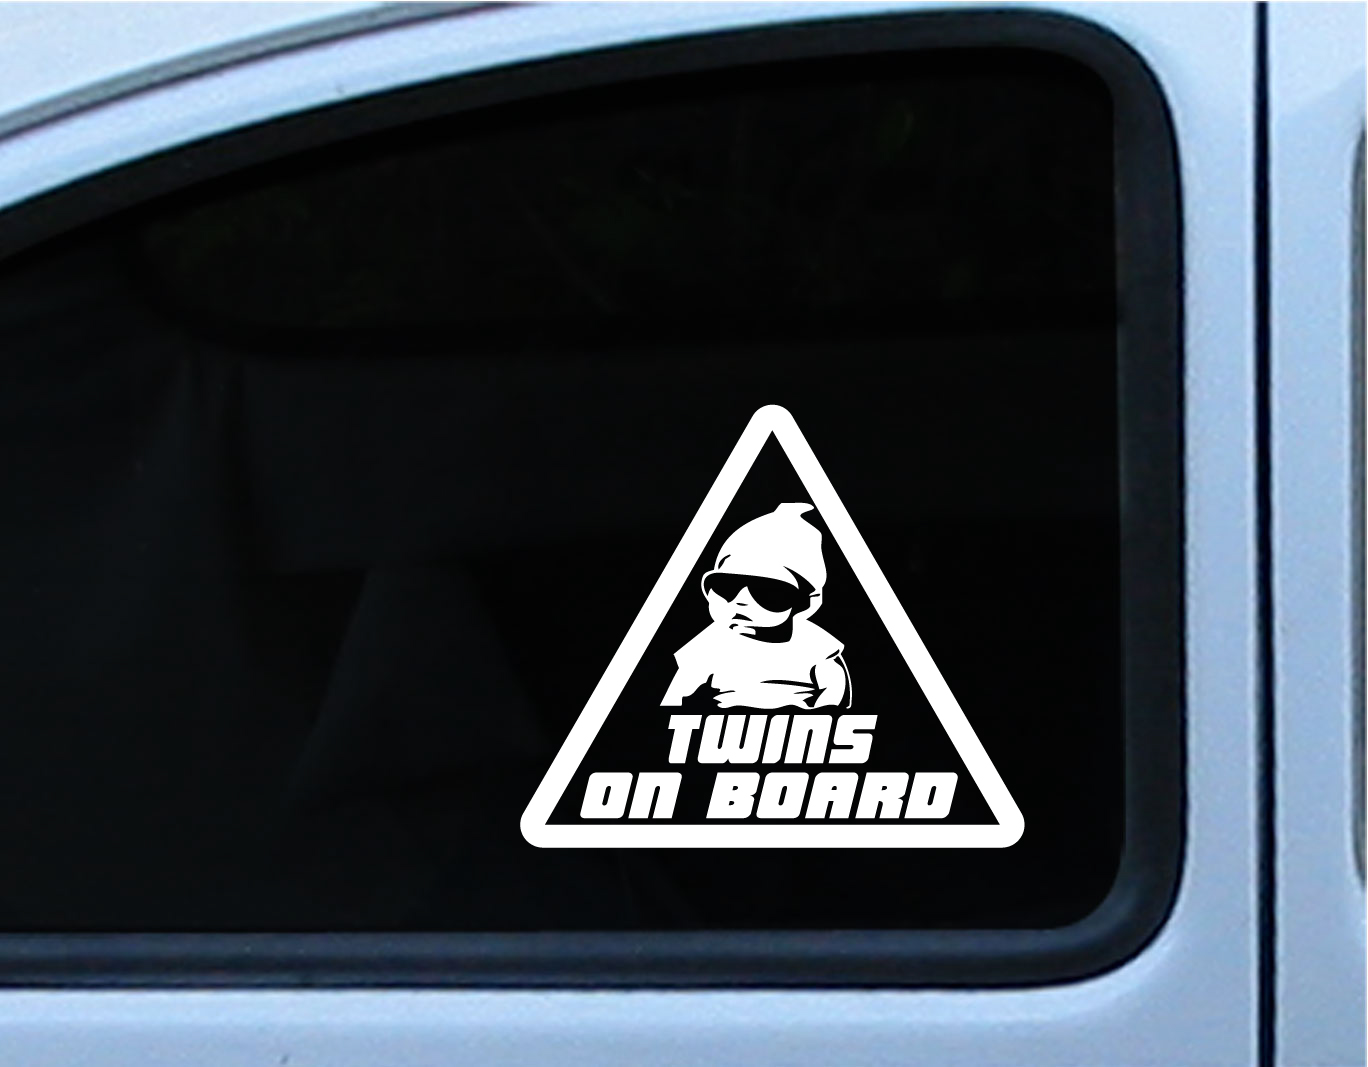 TWINS BABY ON BOARD Carlos Hangover Die Cut Vinyl Decal Sticker - Funny decal stickers for cars